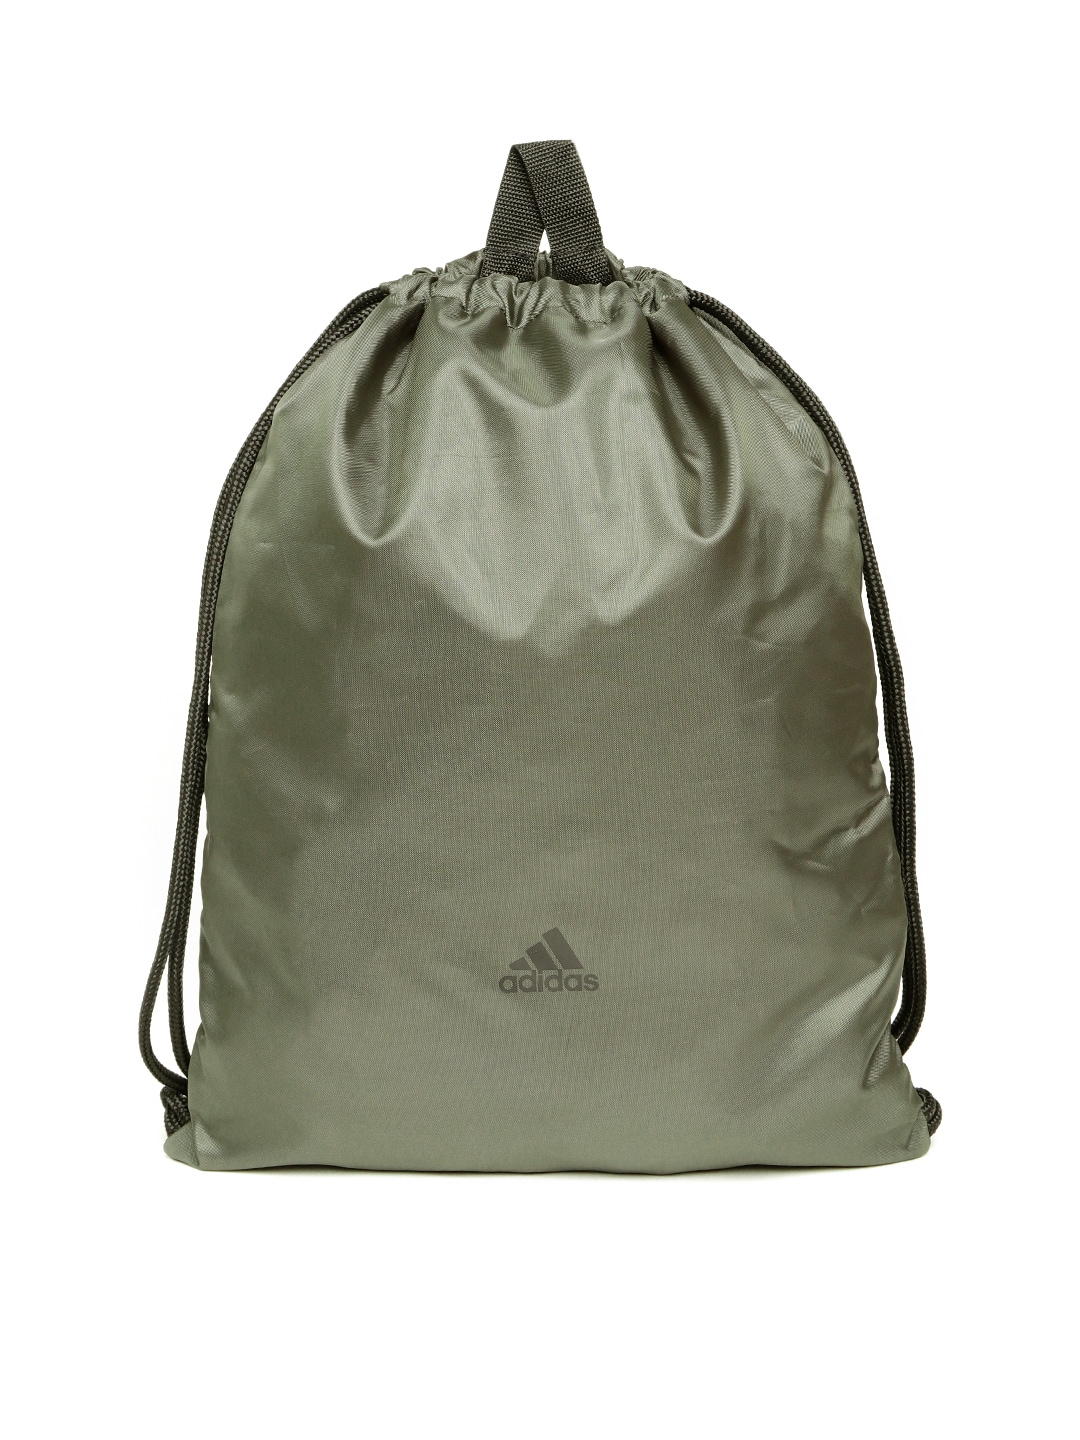 Sports Bag - Buy Sports Bag online in India d101a893d8442